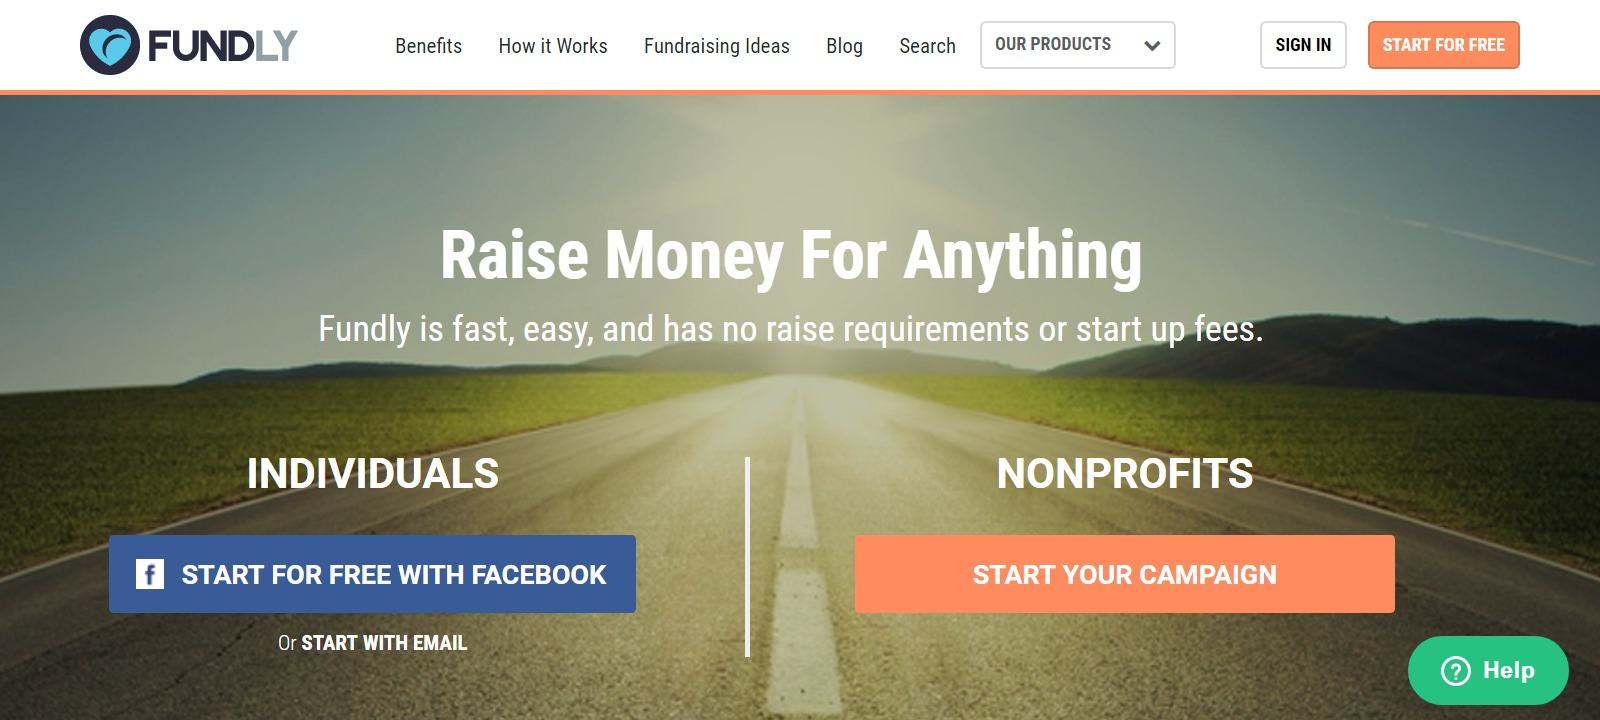 how to get personal donations online